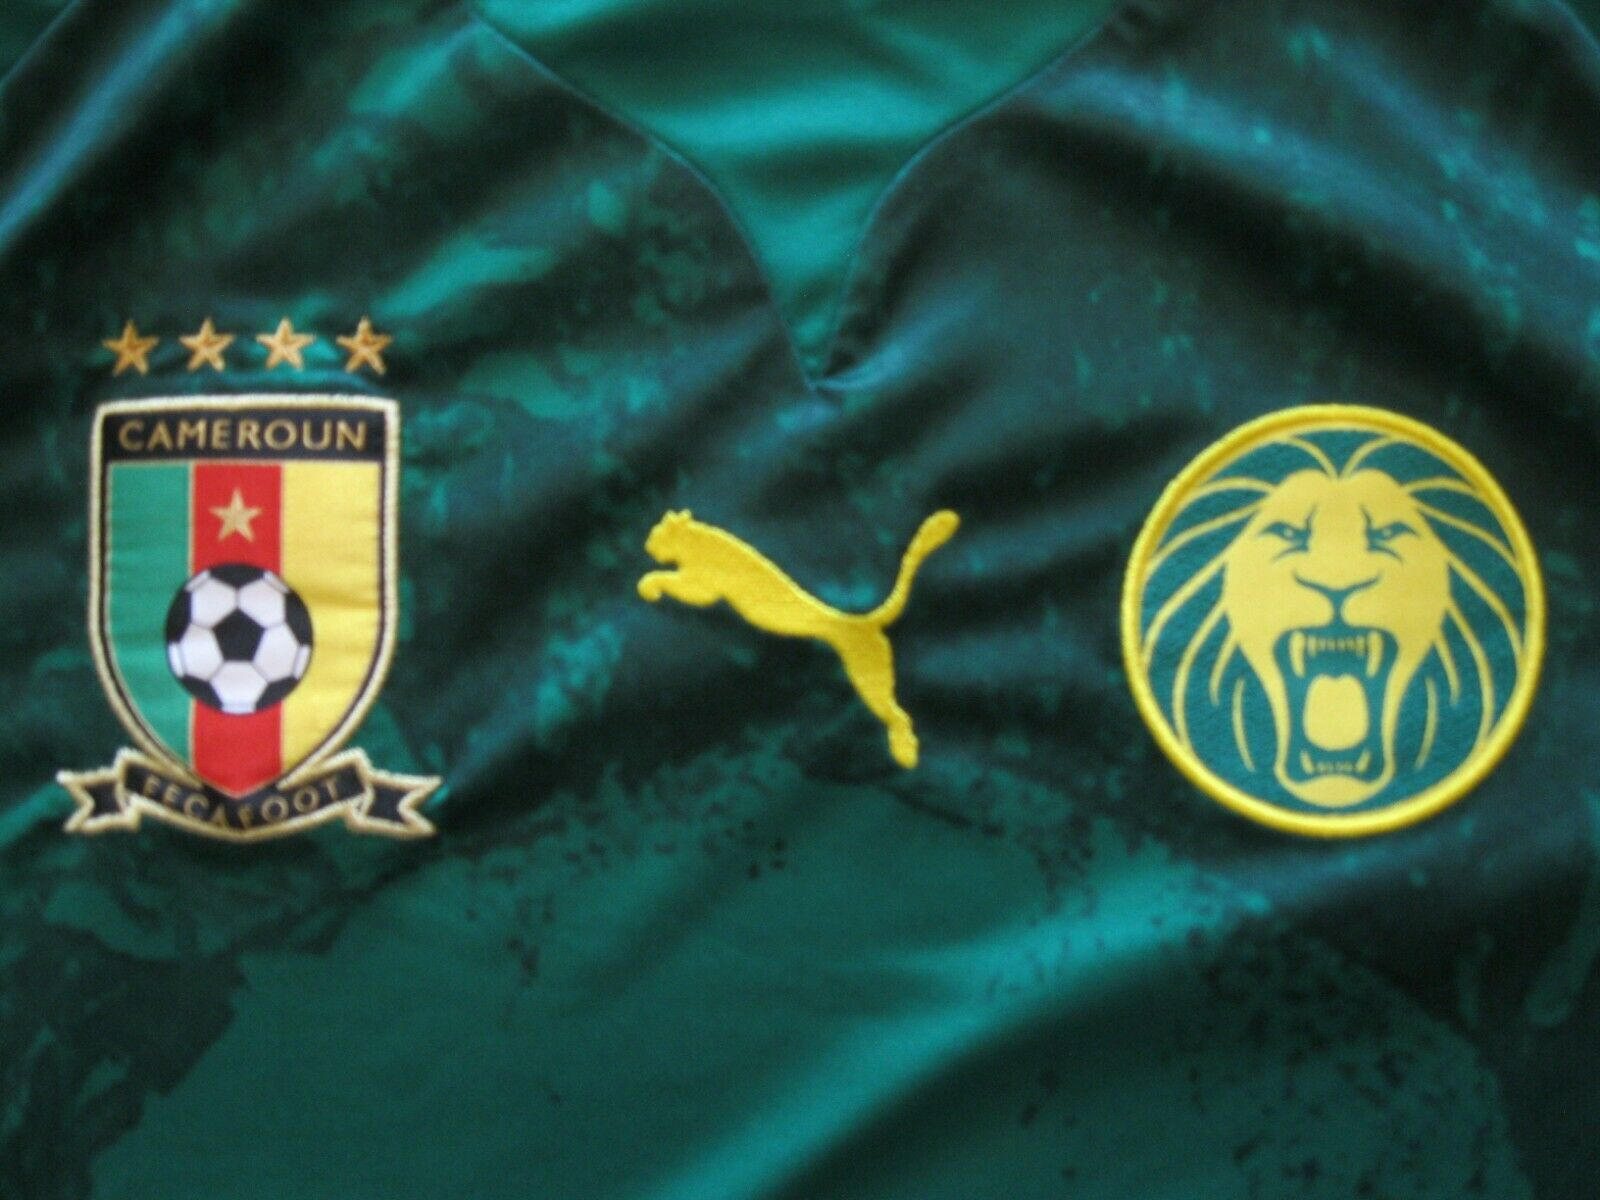 Cameroon national team 2012/2013 Home Size M Puma jersey